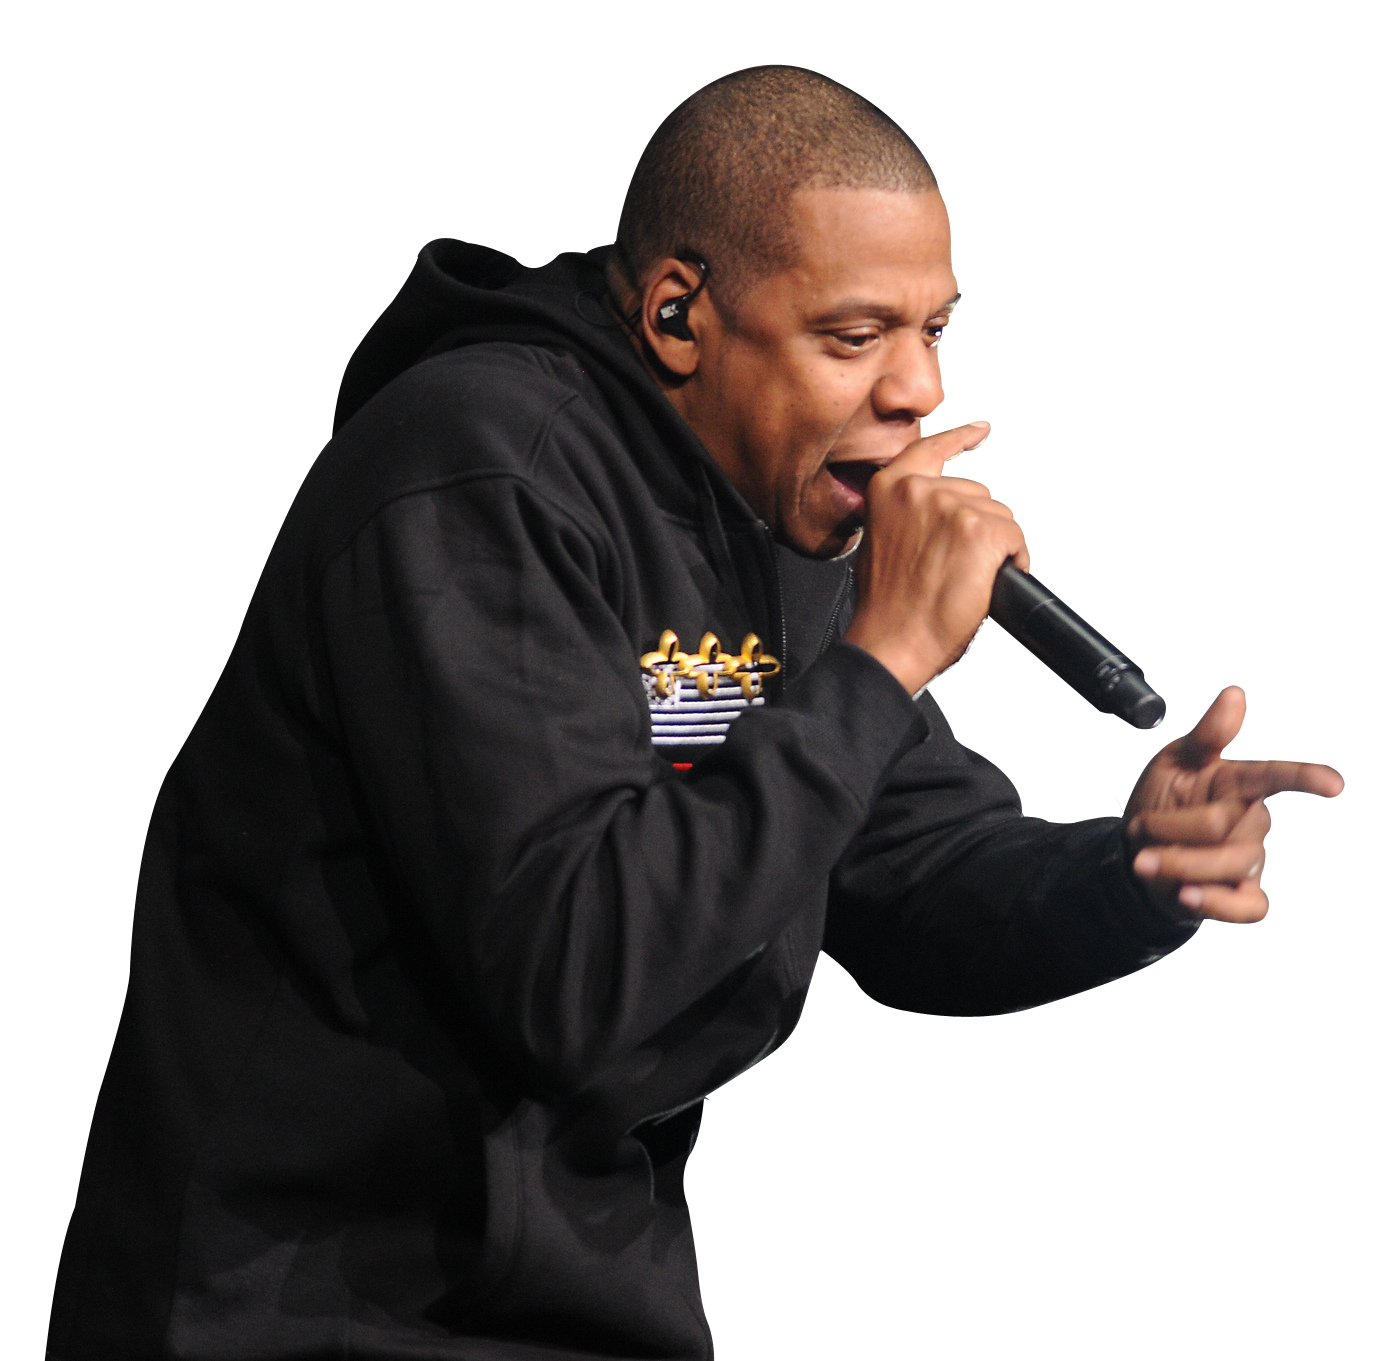 Download PNG Image - Jay Z Clipart 365-Download PNG image - Jay Z Clipart 365-4